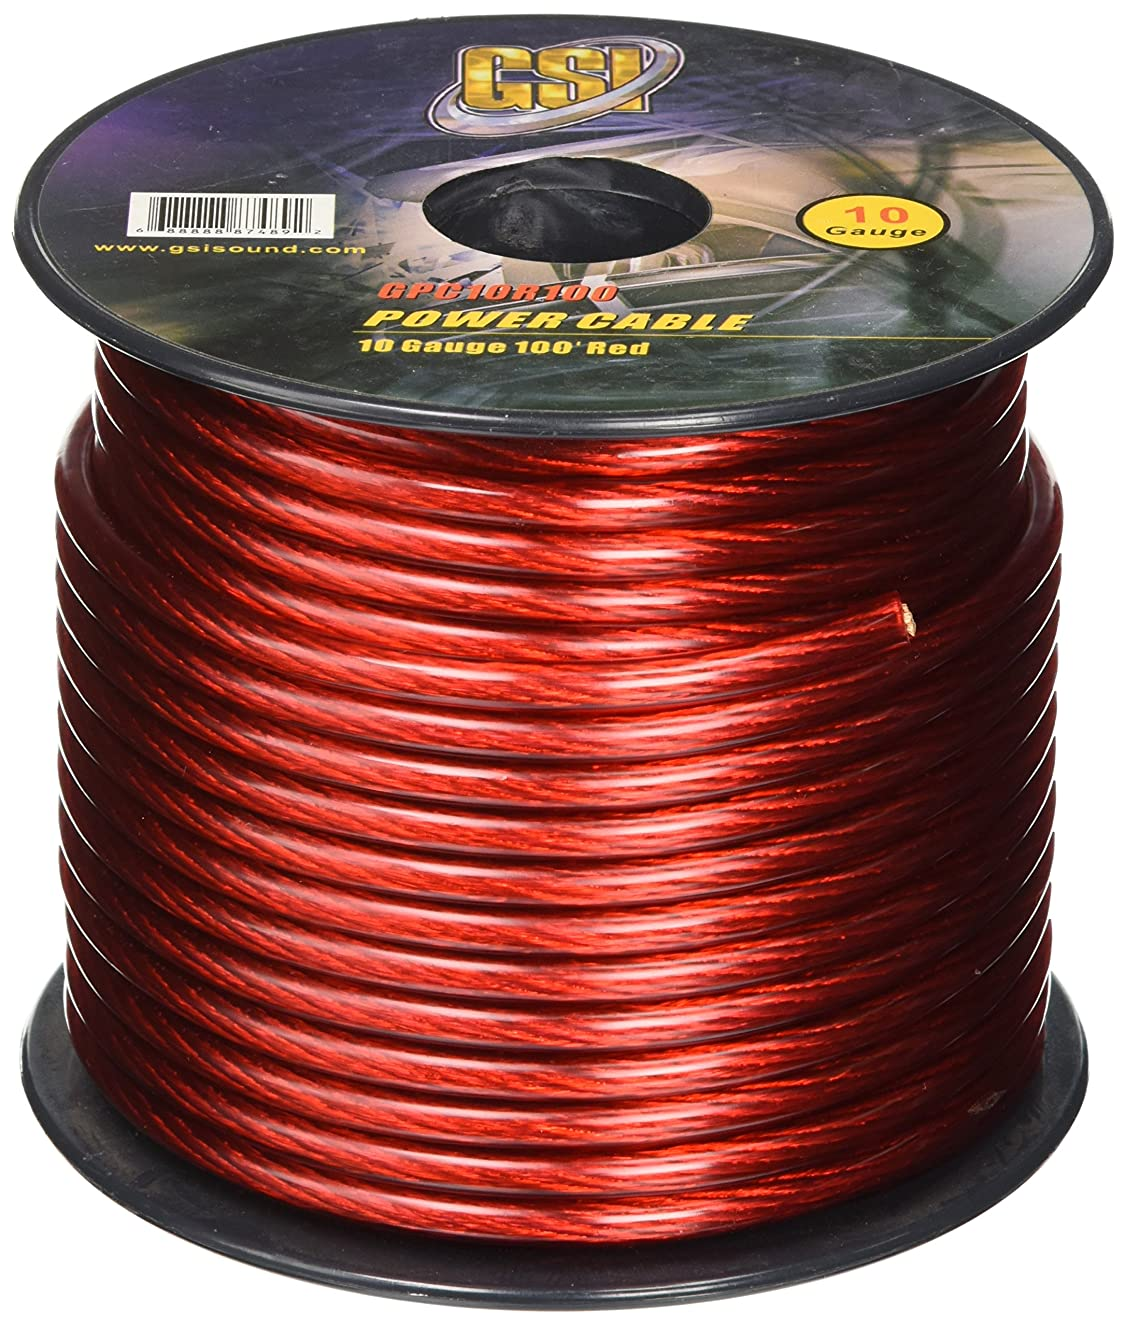 GSI GPC10R100 - 10 Gauge Power Ground Cables